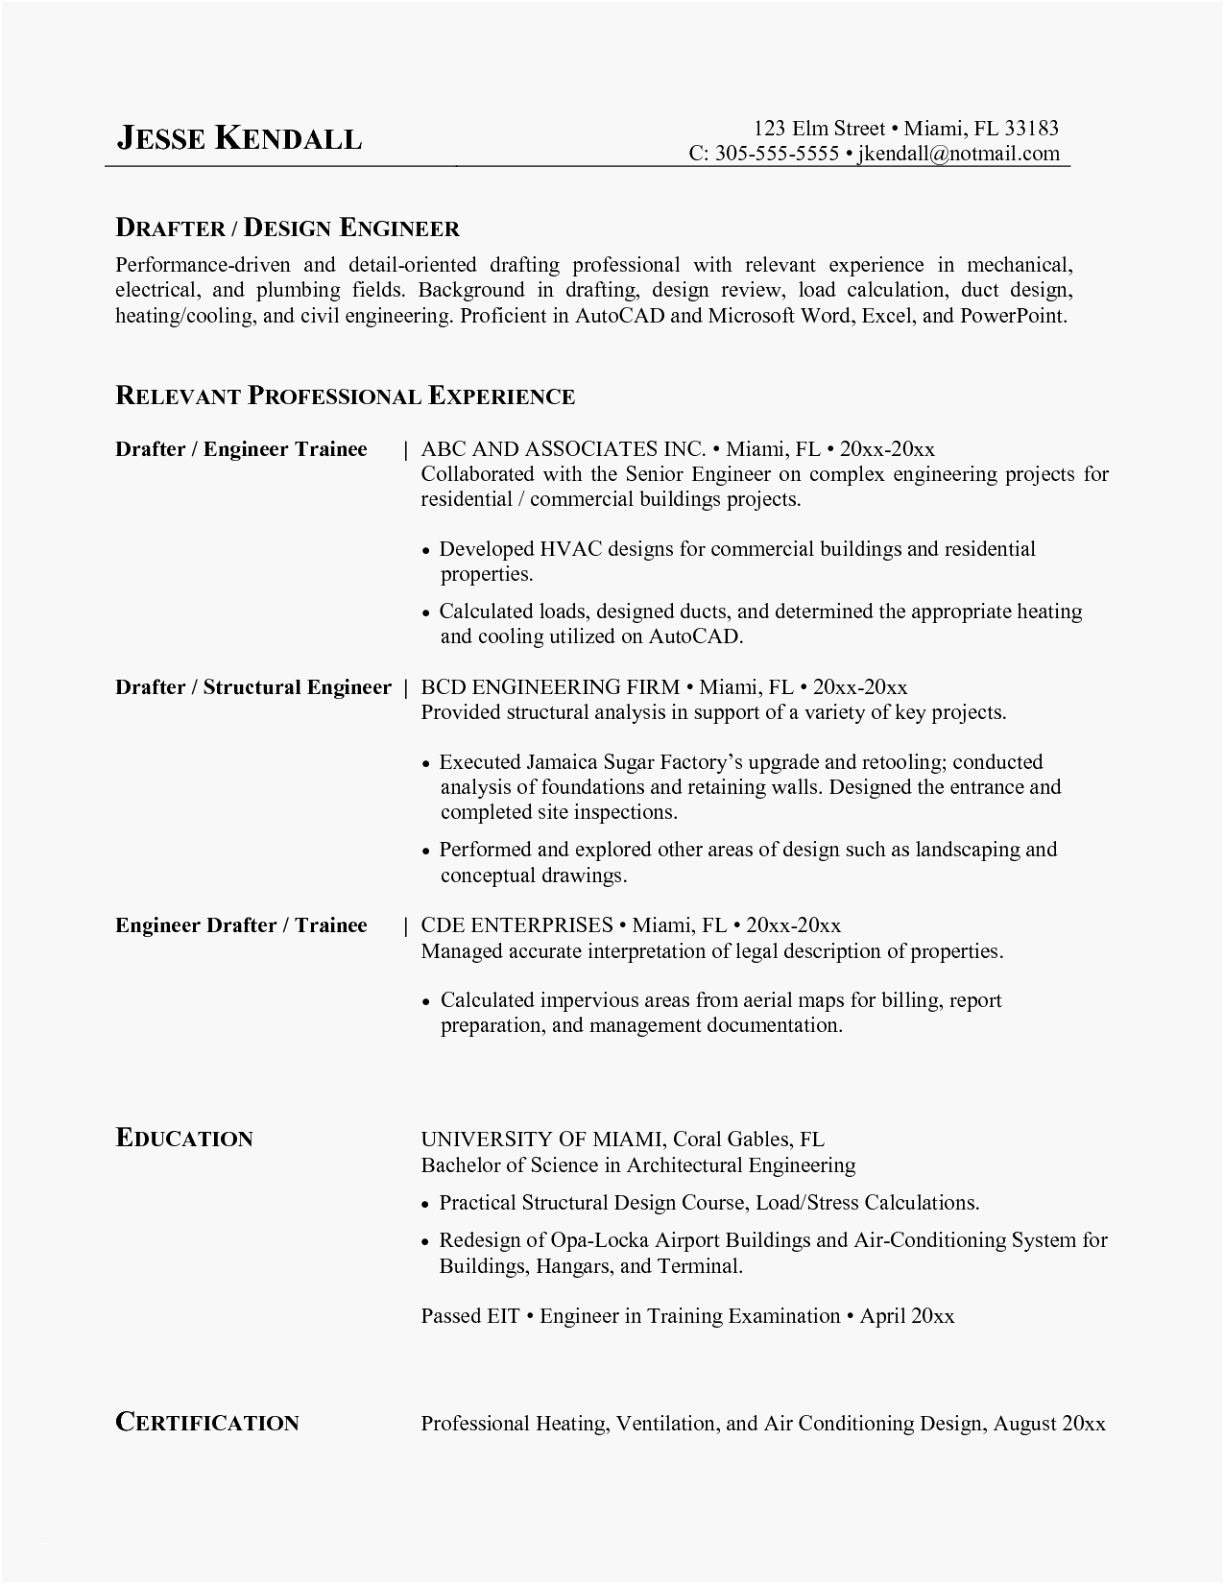 electrical apprentice resume Collection-Apprentice Electrician Resume Save Electrician Apprentice Resume New Electrical Apprentice Resume Best 20-h